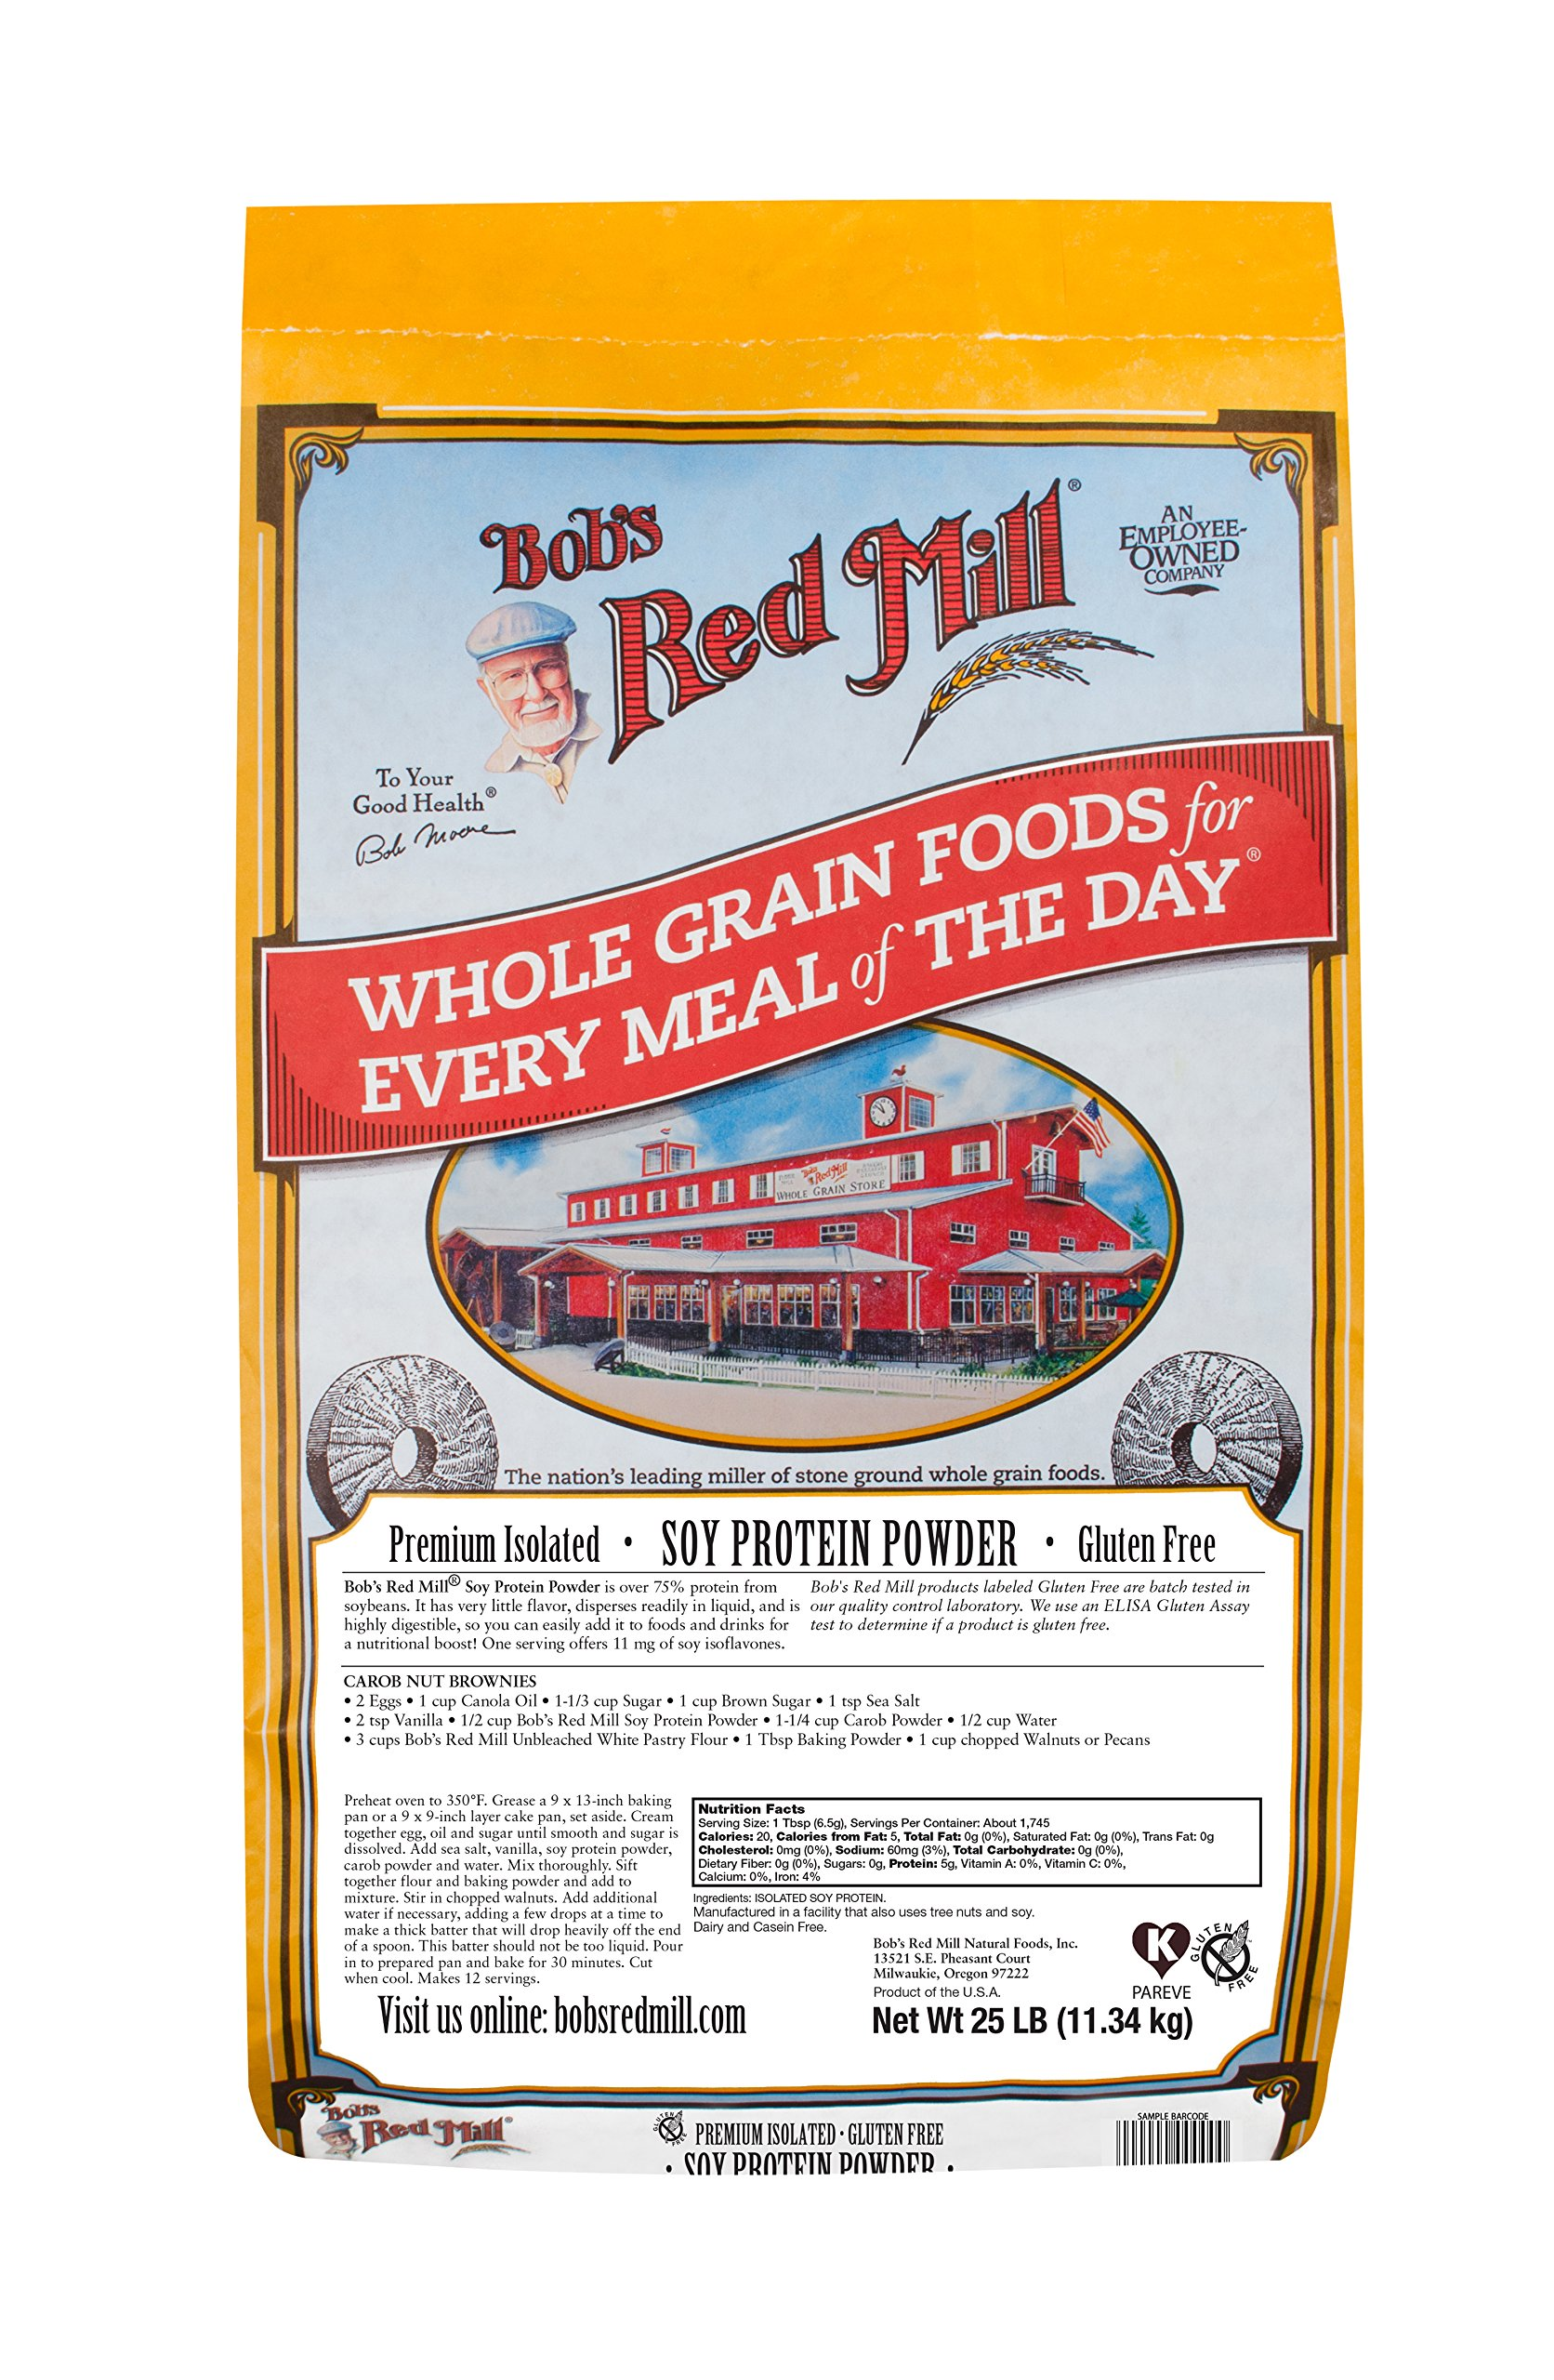 Bob's Red Mill Gluten Free Soy Protein Powder, 25 Pound by Bob's Red Mill (Image #1)